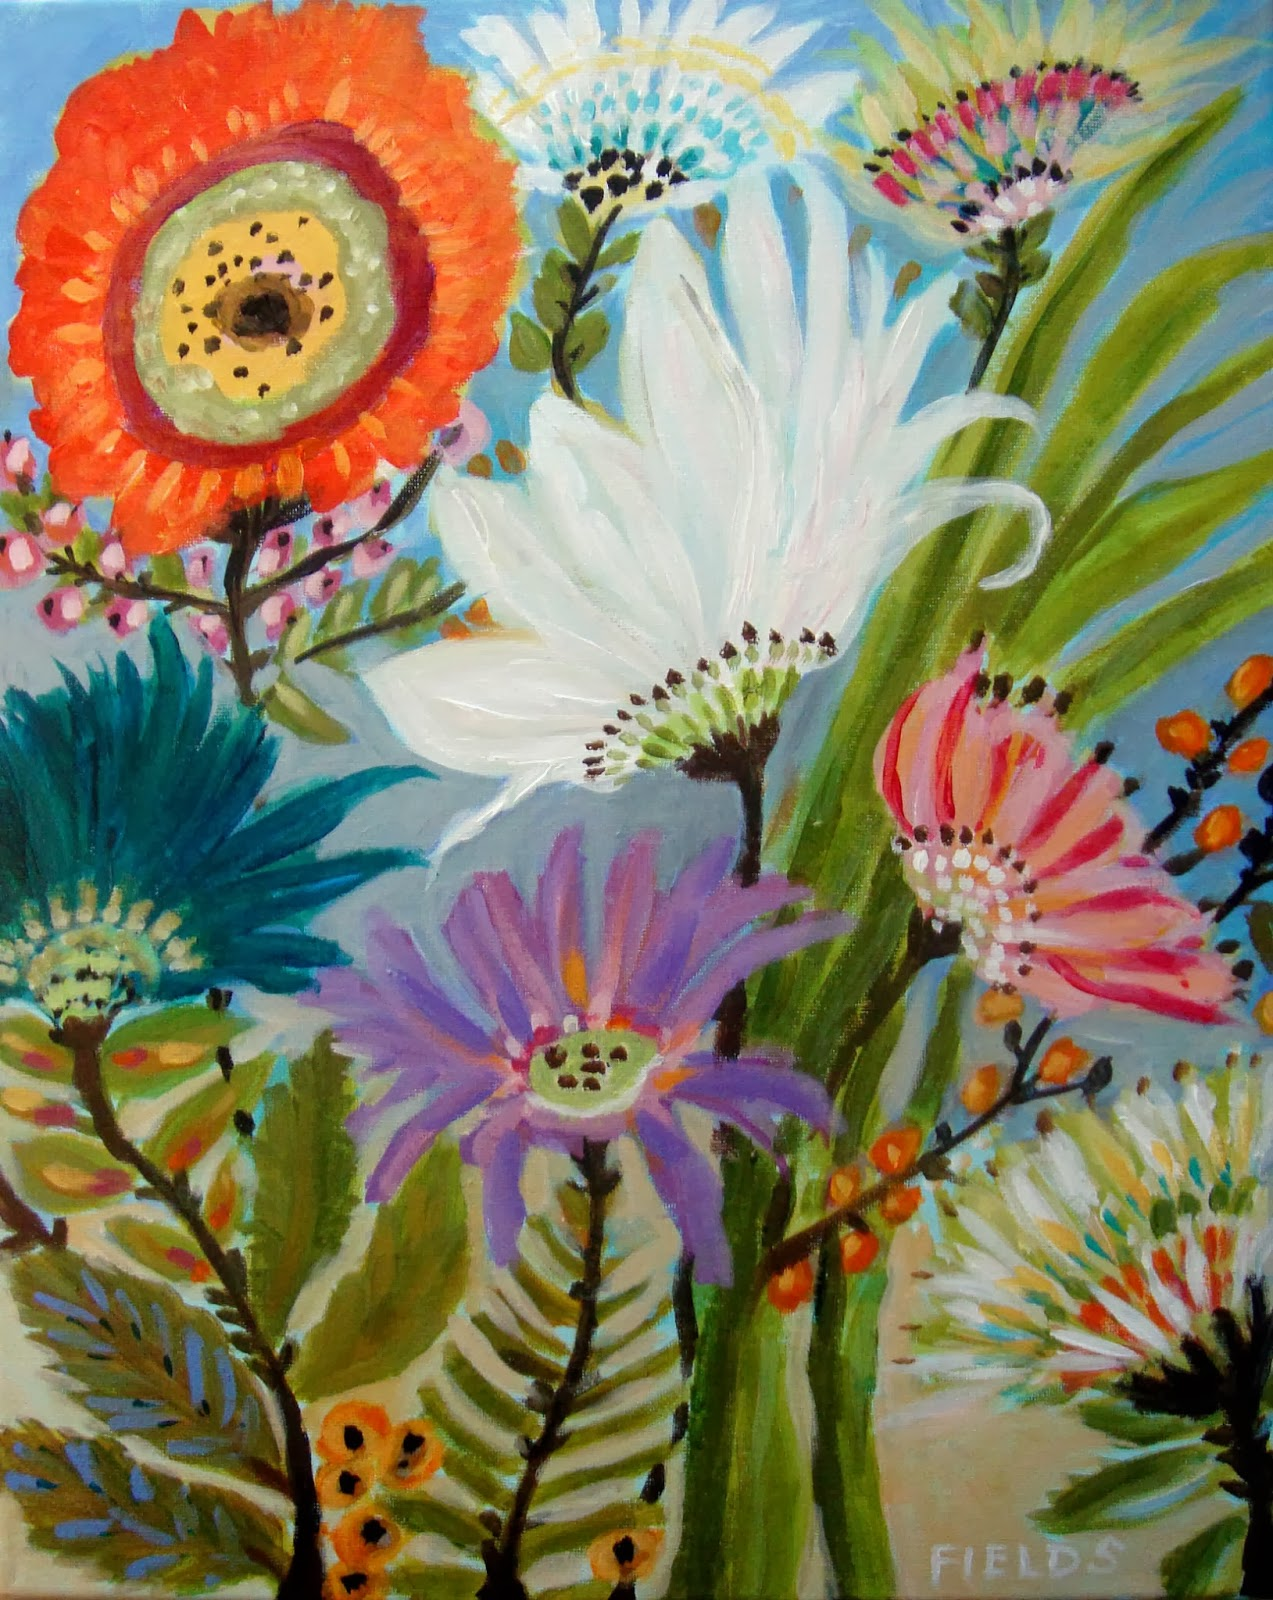 About Starting An Etsy Shop Selling Your Paintings My